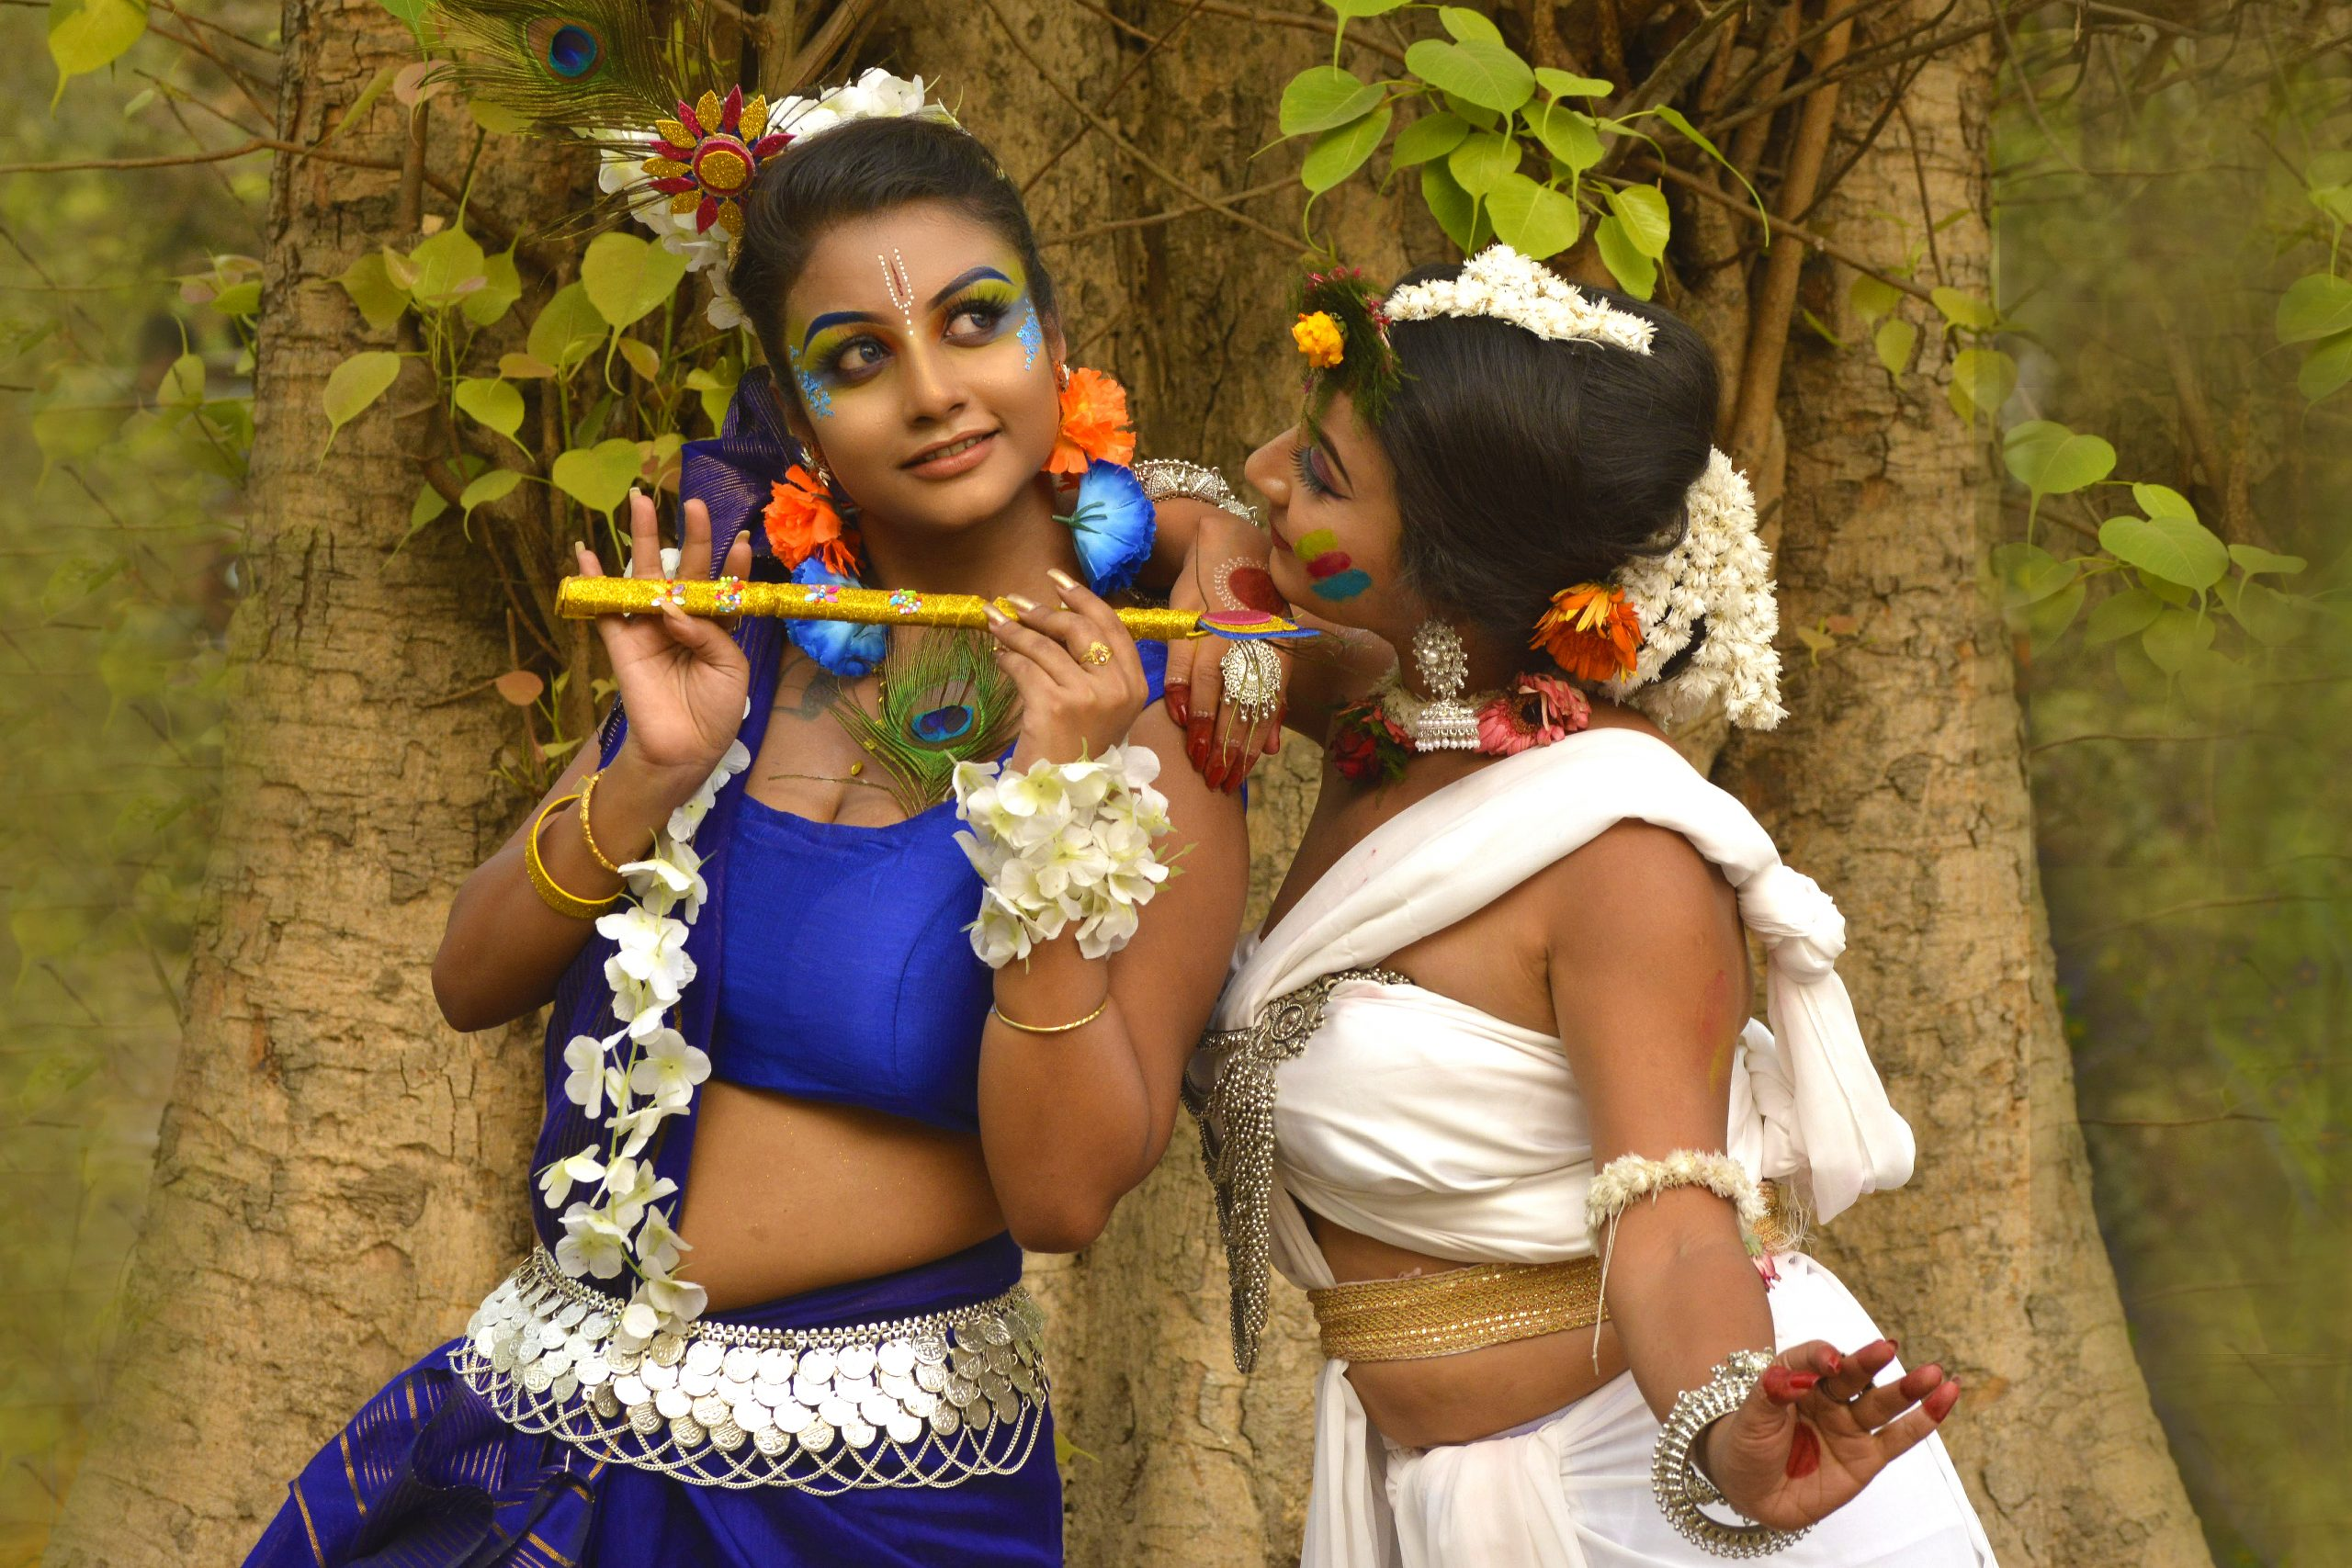 Girls in Radha Krishna getup